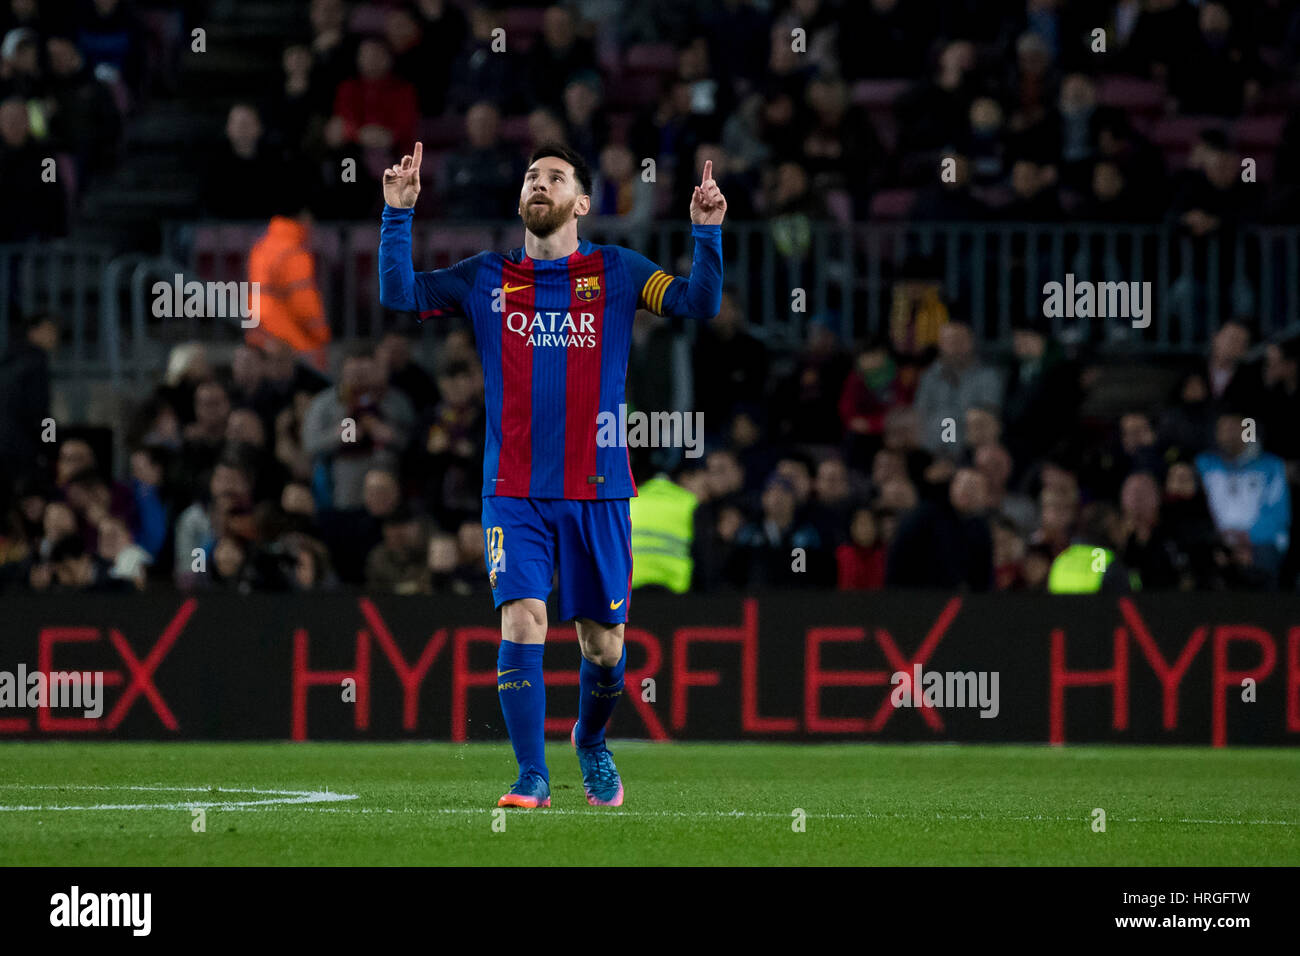 Camp Not Stadium, Barcelona, Spain. 1st March, 2017. Messi celebrates his first goal at Camp Nou Stadium, Barcelona, - Stock Image